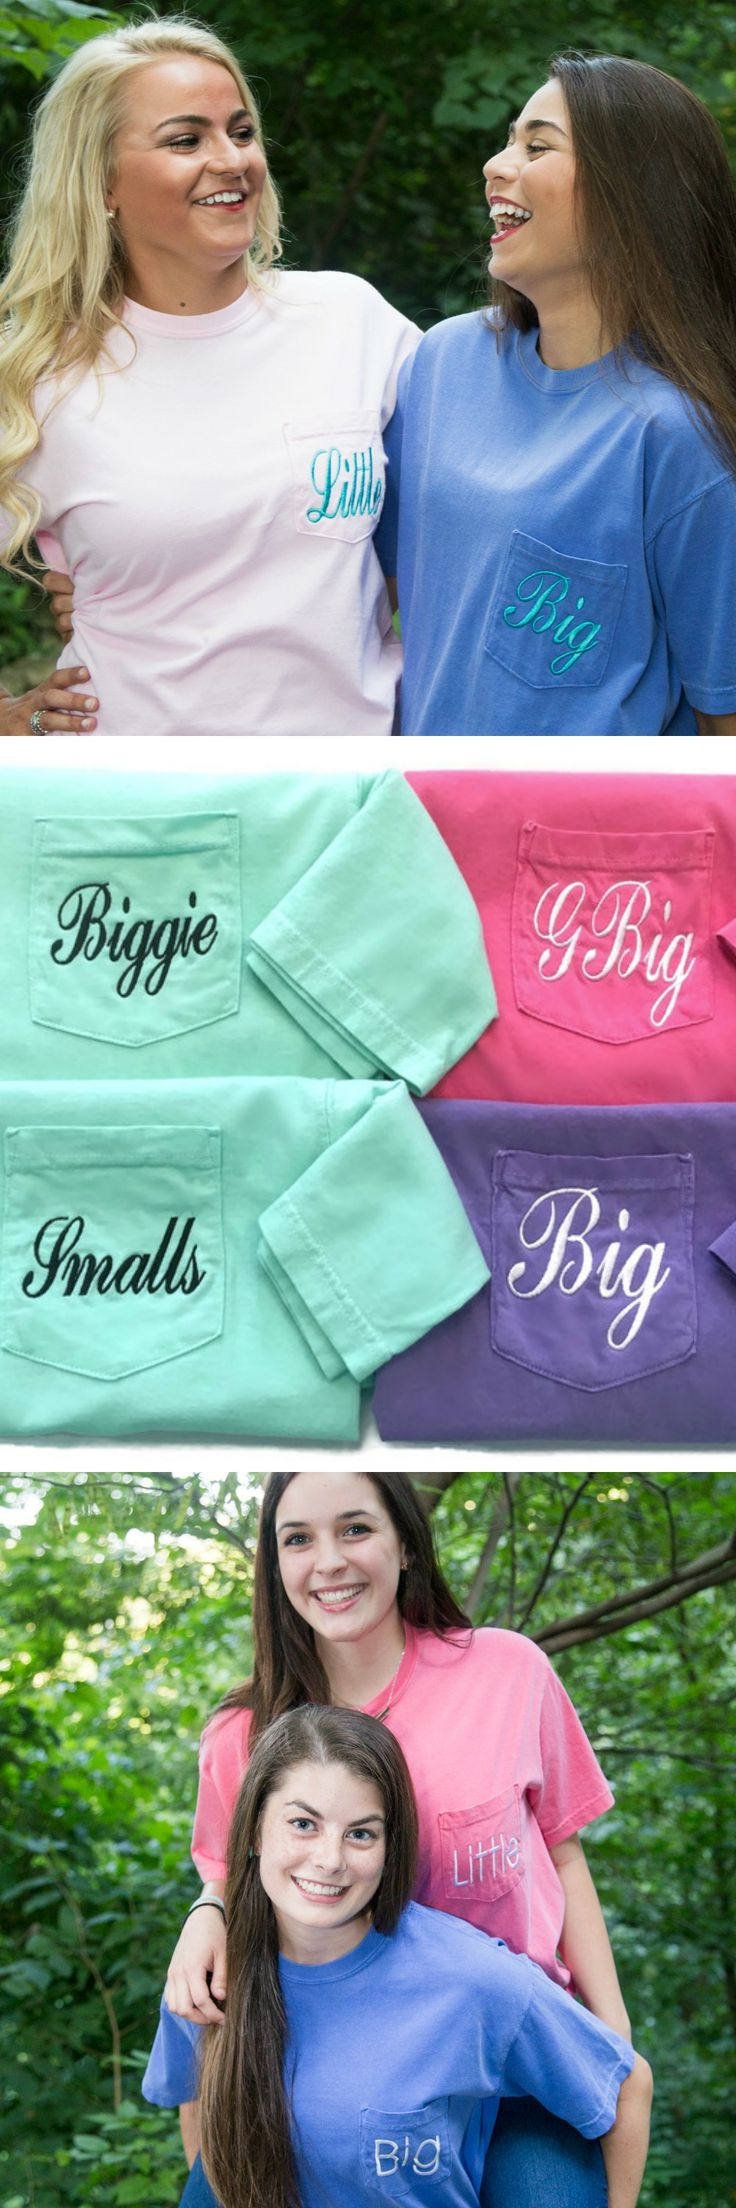 Big Little Sorority Shirts Perfect For Your Reveals, Big Sis Appreciation Nights, & Initiation Gifts. Quick Turnaround Time & Comfort Colors Shirts! Sorority Family Shirt Names + Biggie Smalls Options